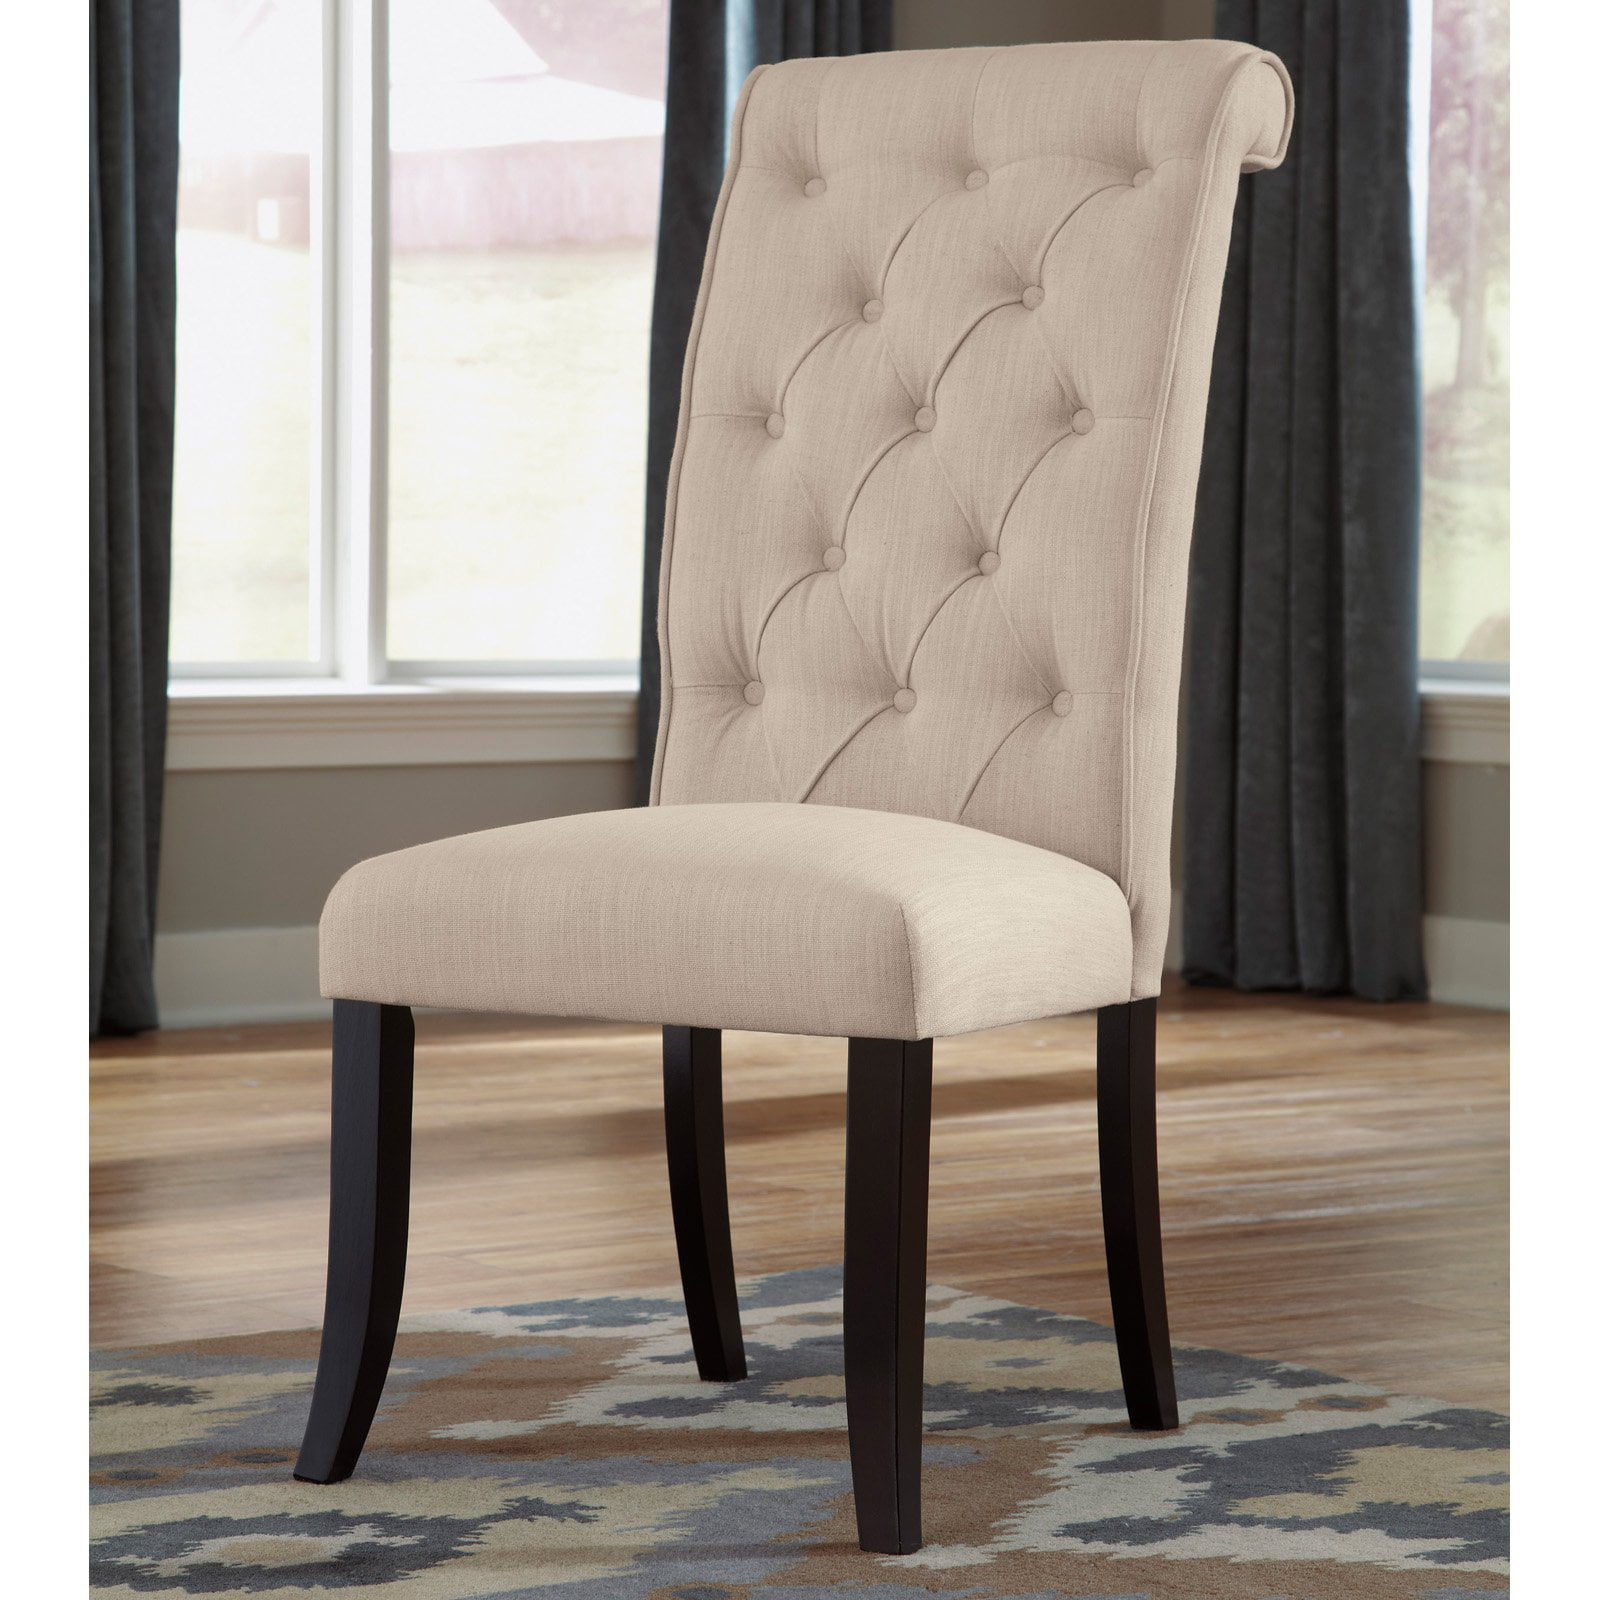 Signature Design By Ashley Tripton Parsons Chairs   Set Of 2   Walmart.com